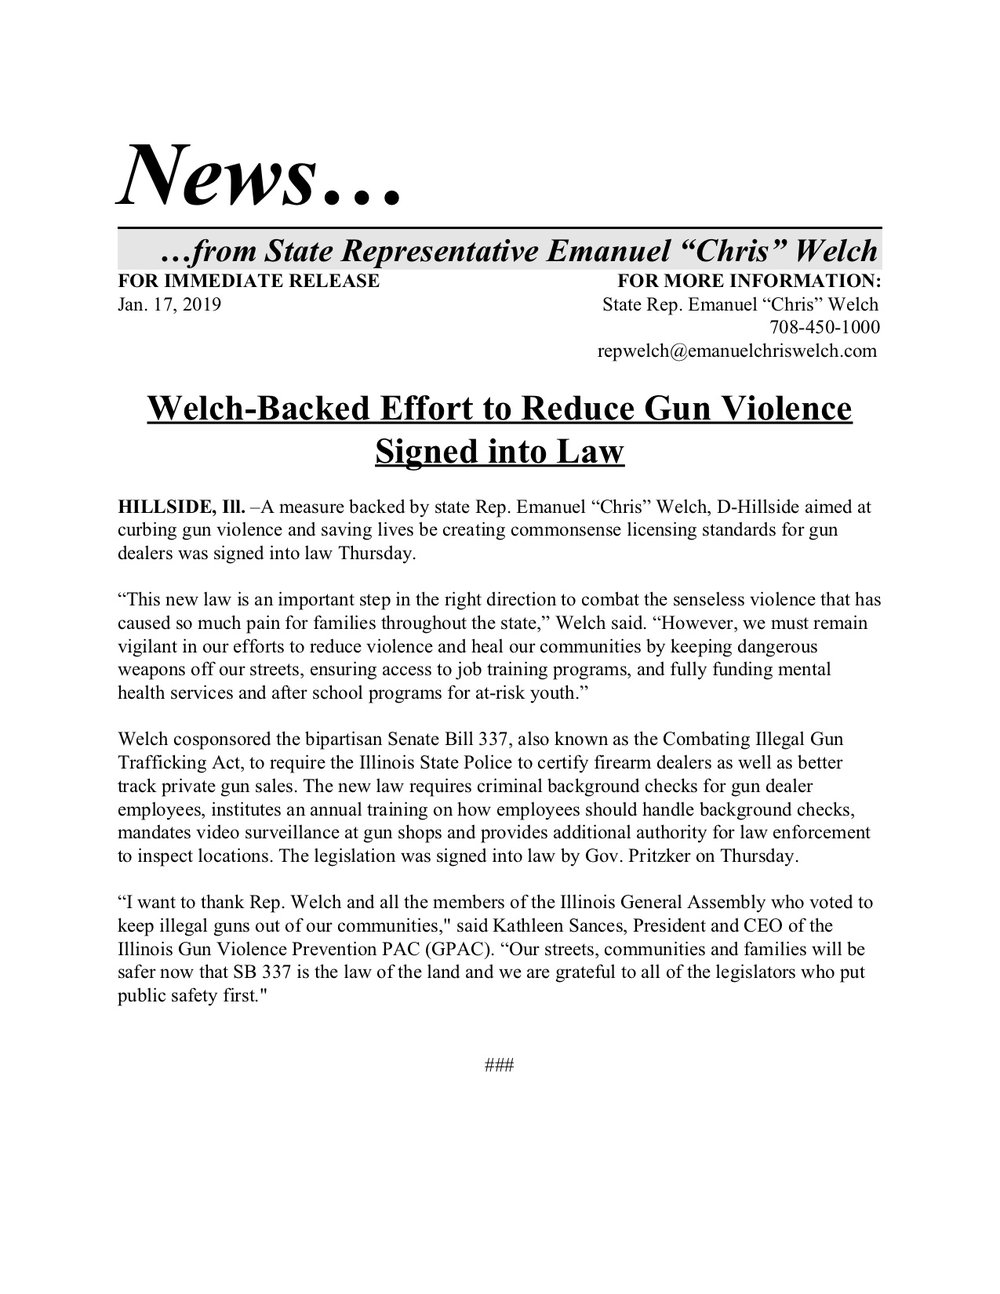 Welch-Backed Effort to Reduce Gun Violence Signed into Law  (January 17, 2019)